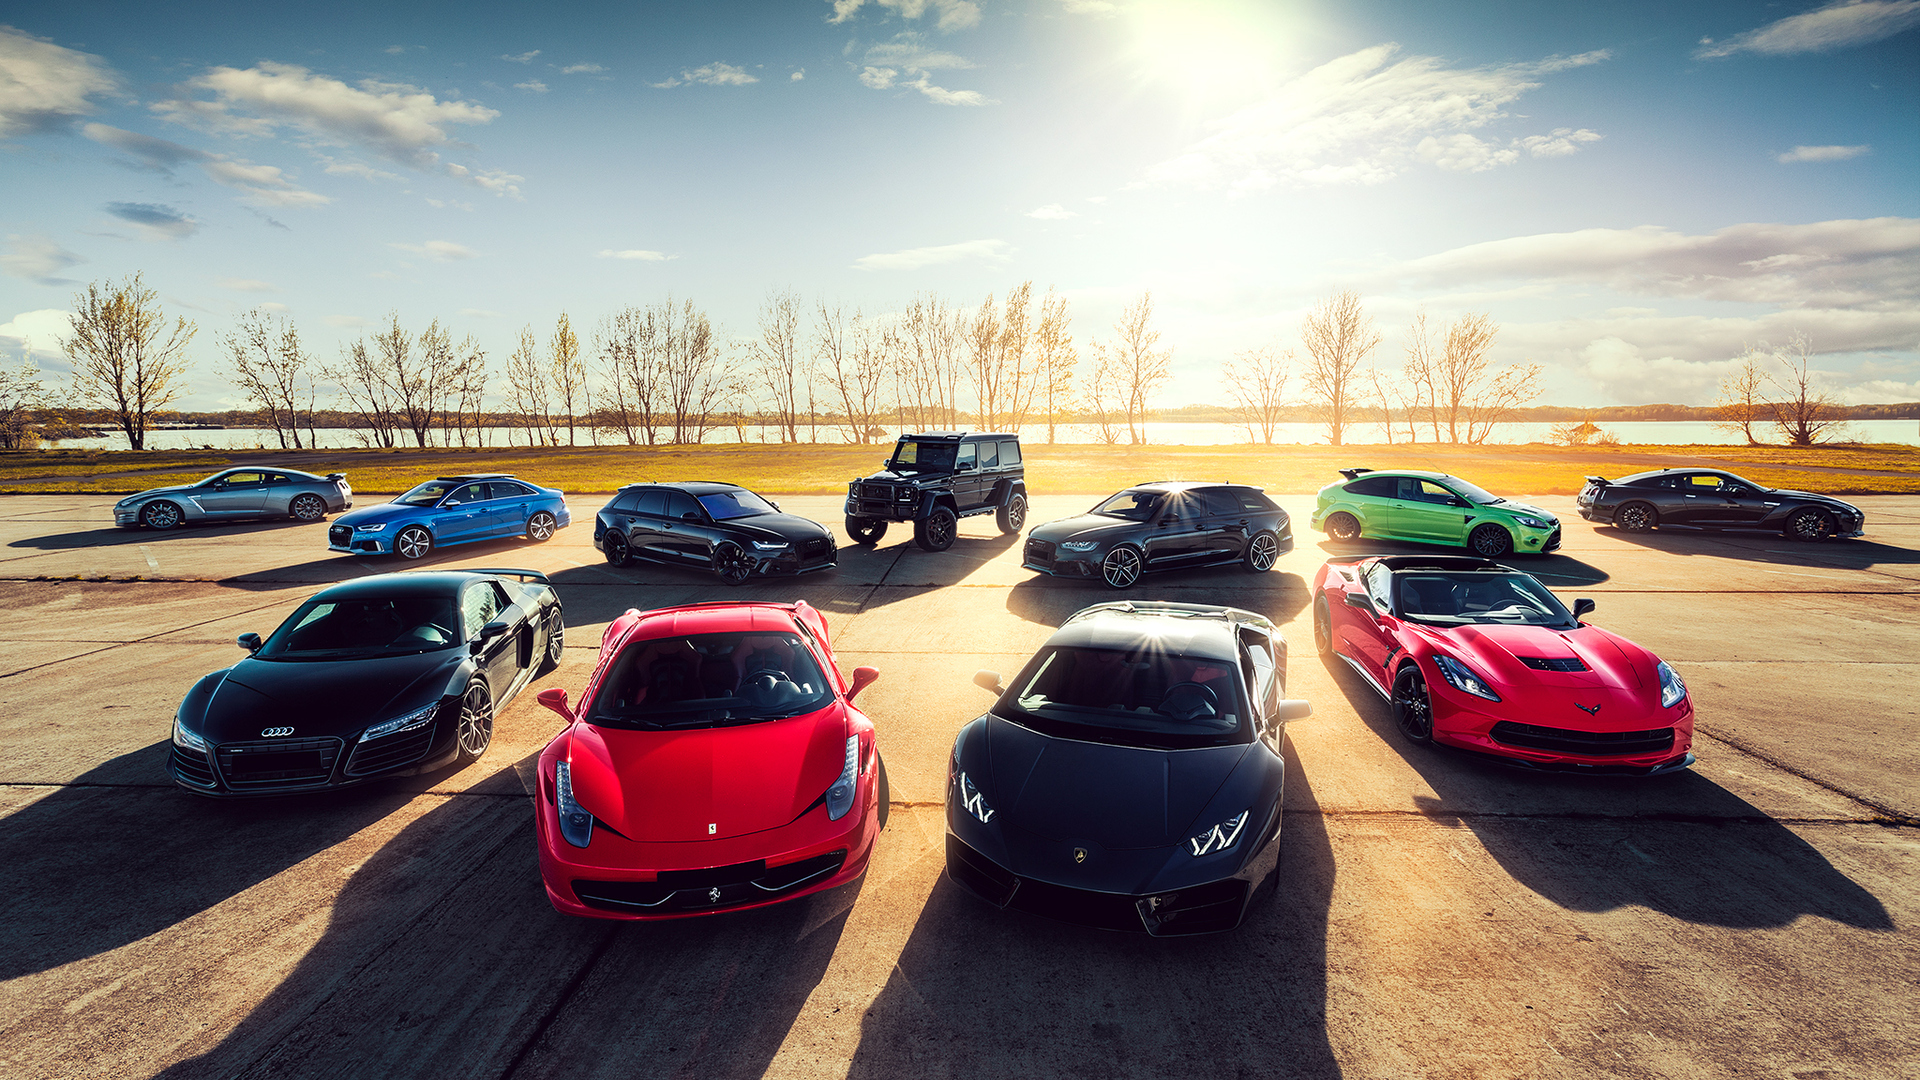 Supercar Wallpaper Hd 1080p | Bestpicture1.org